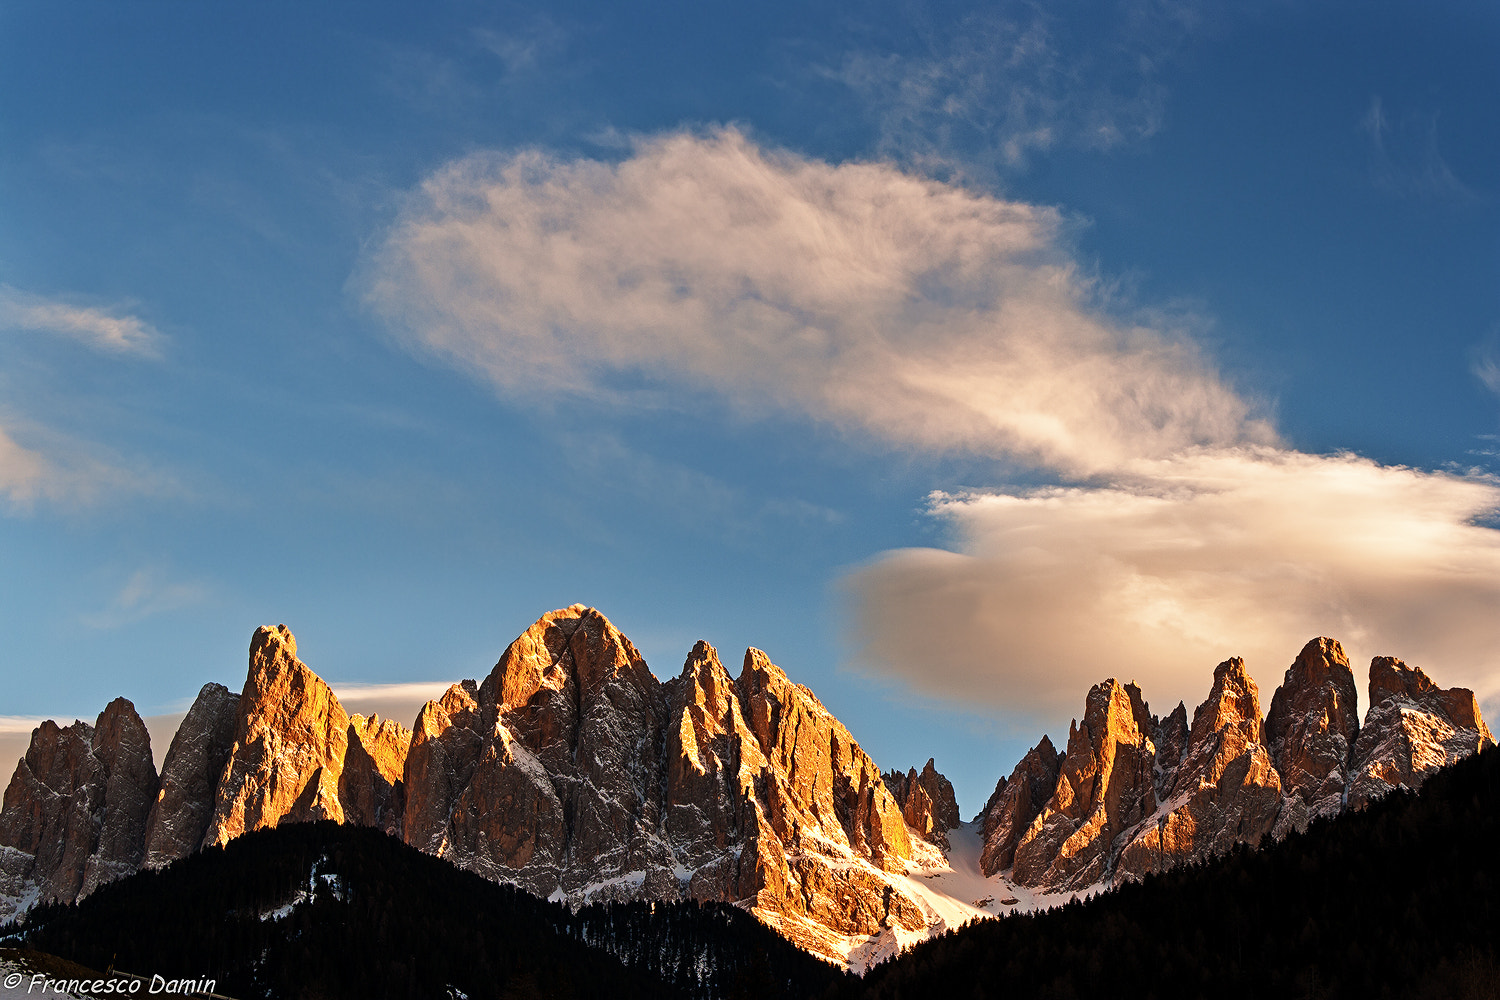 Photograph Tramonto sui monti by Francesco Damin on 500px